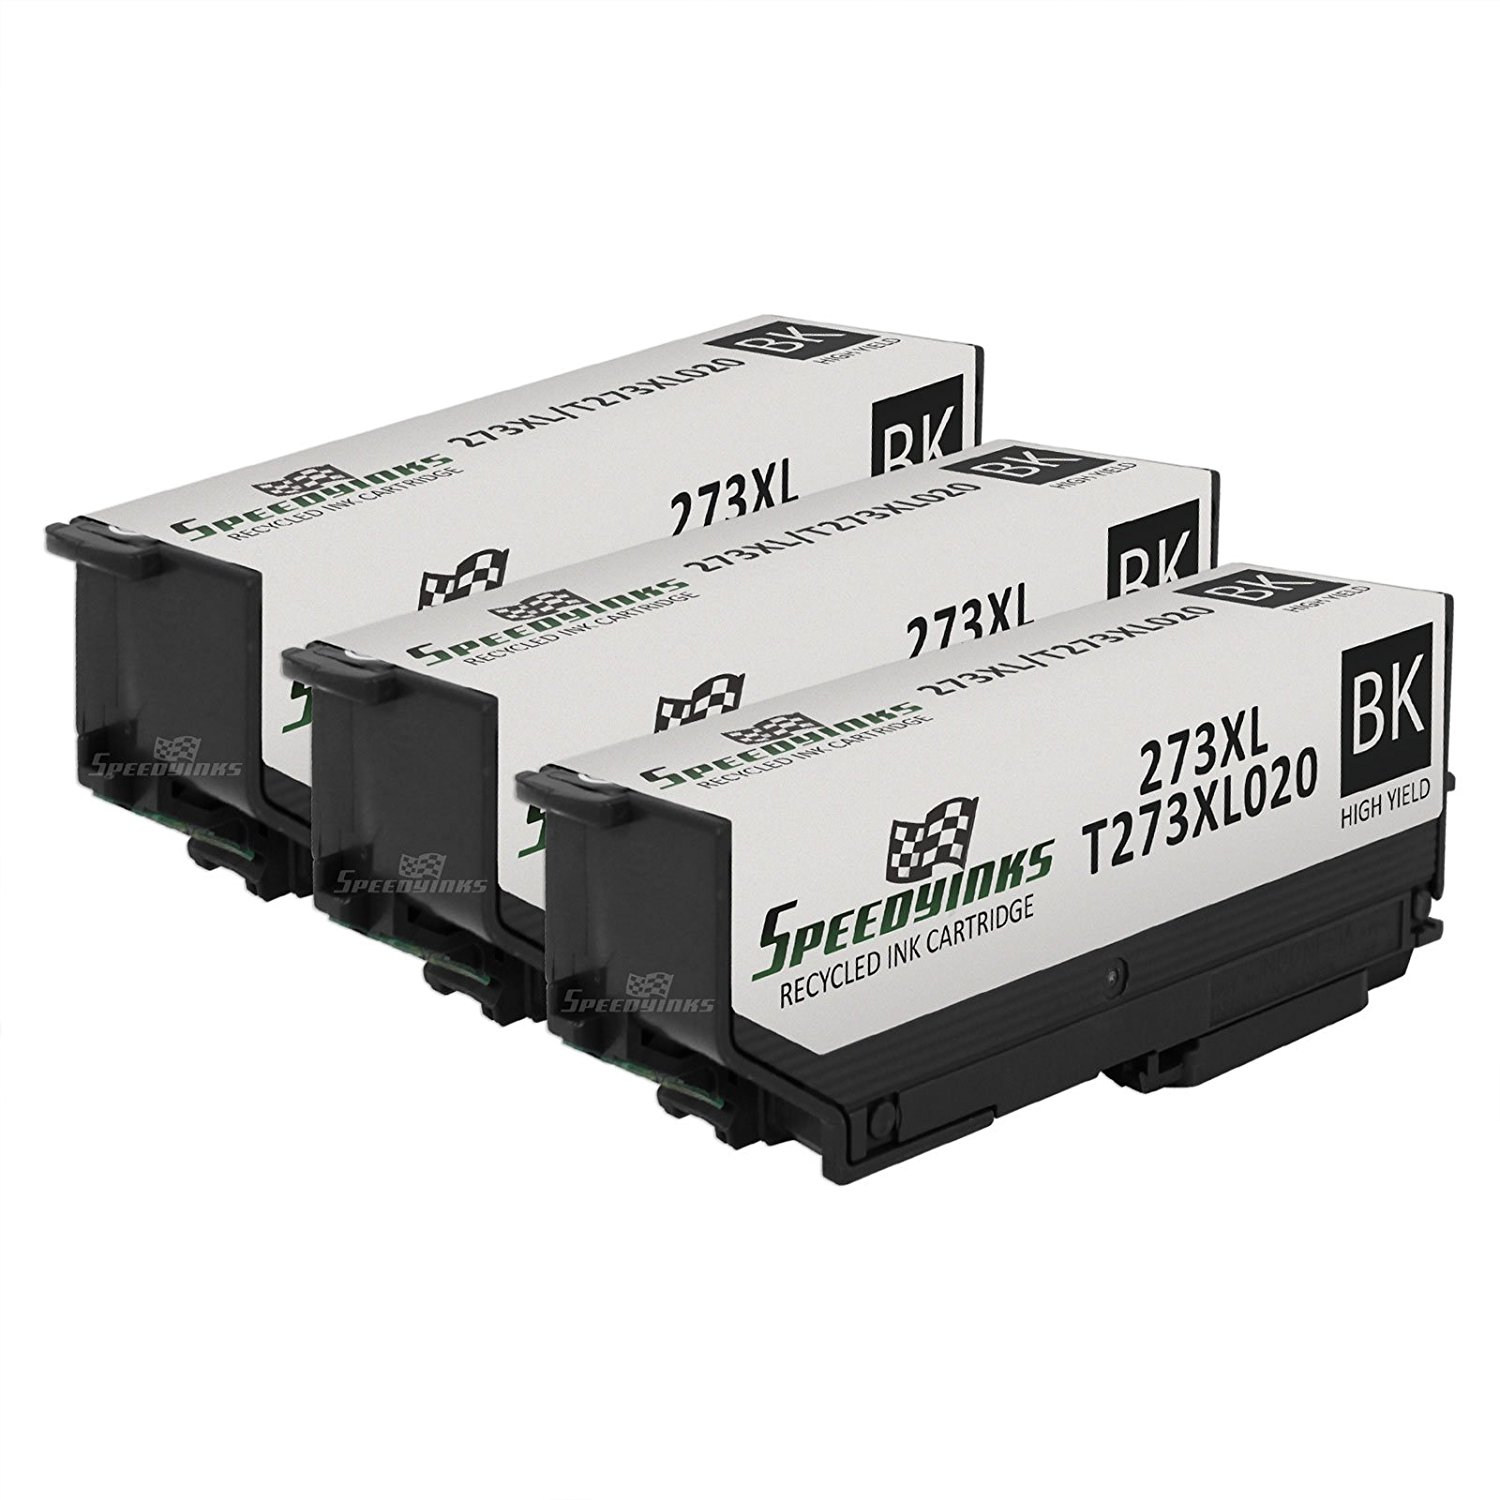 Speedy Inks - 3pk Remanufactured High Yield Black Ink for Epson T273XL 273XL T273XL020 for use in for use in Epson Expression XP-600 Small-in-One, XP-800 Small-in-One, Premium XP-610 Small-in-One, Premium XP-810 Small-in-One, Premium XP-520 Small-in-One, Premium XP-620 Small-in-One, Premium XP-820